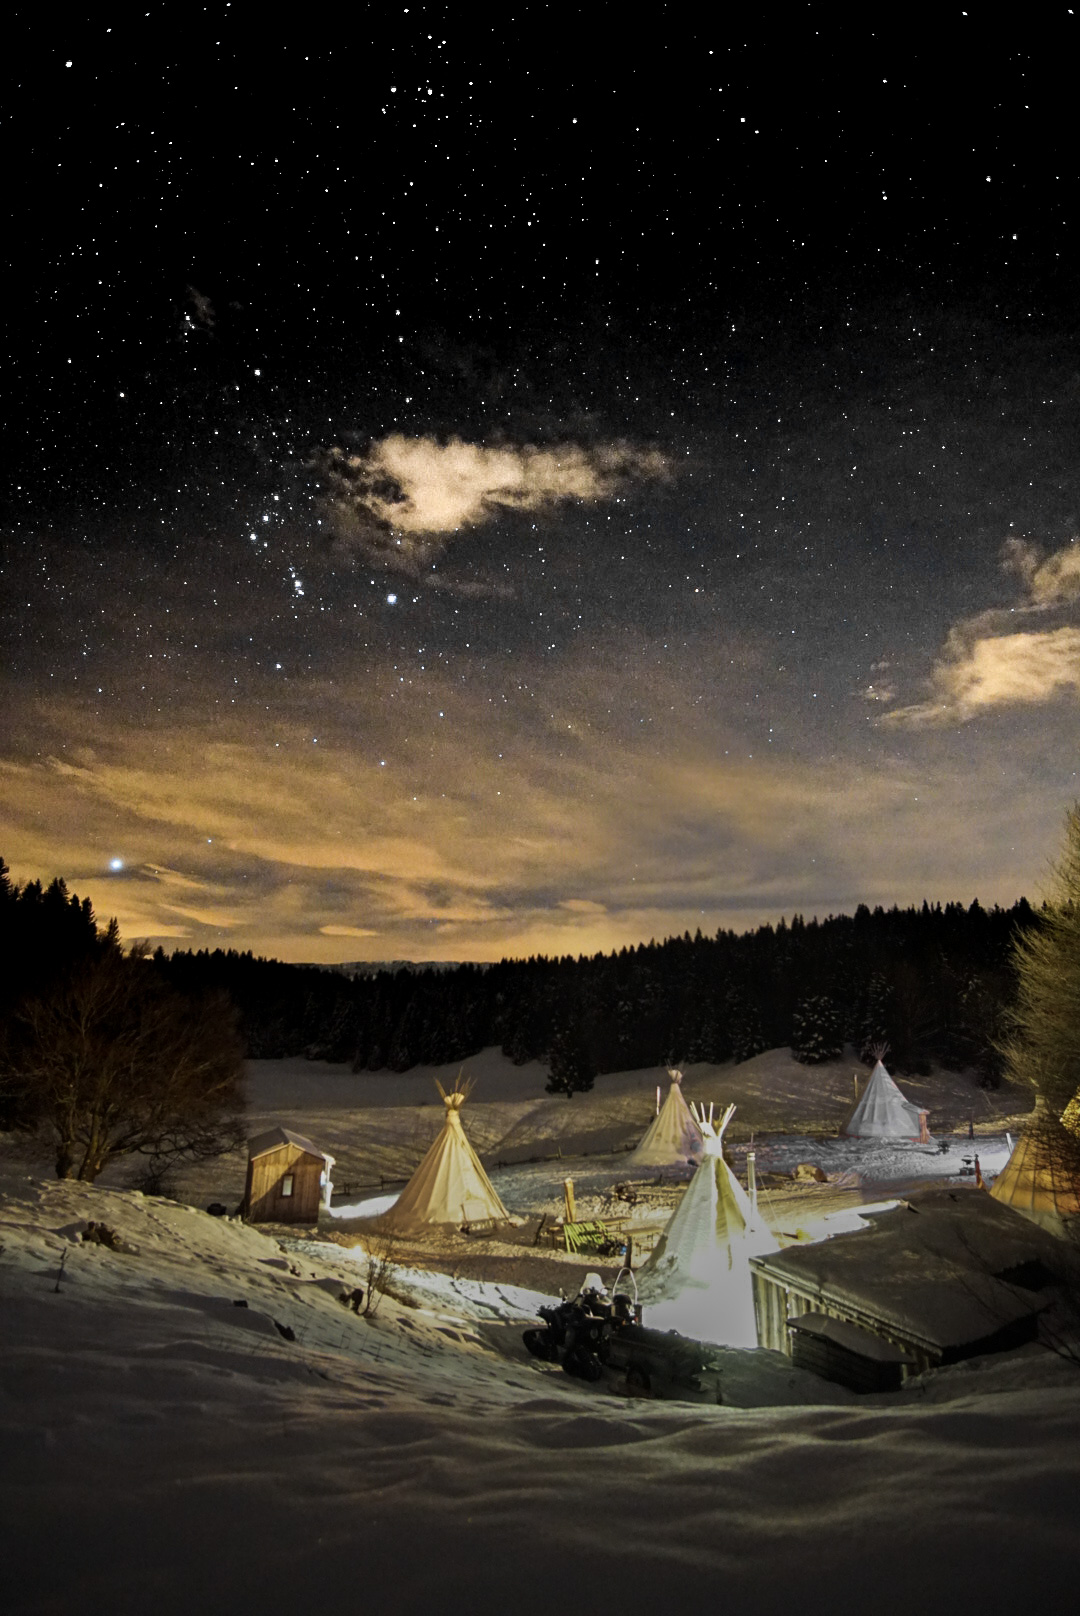 sleep in a tipi in France! It's possible in Savoie Mont Blanc, Massif des Bauges